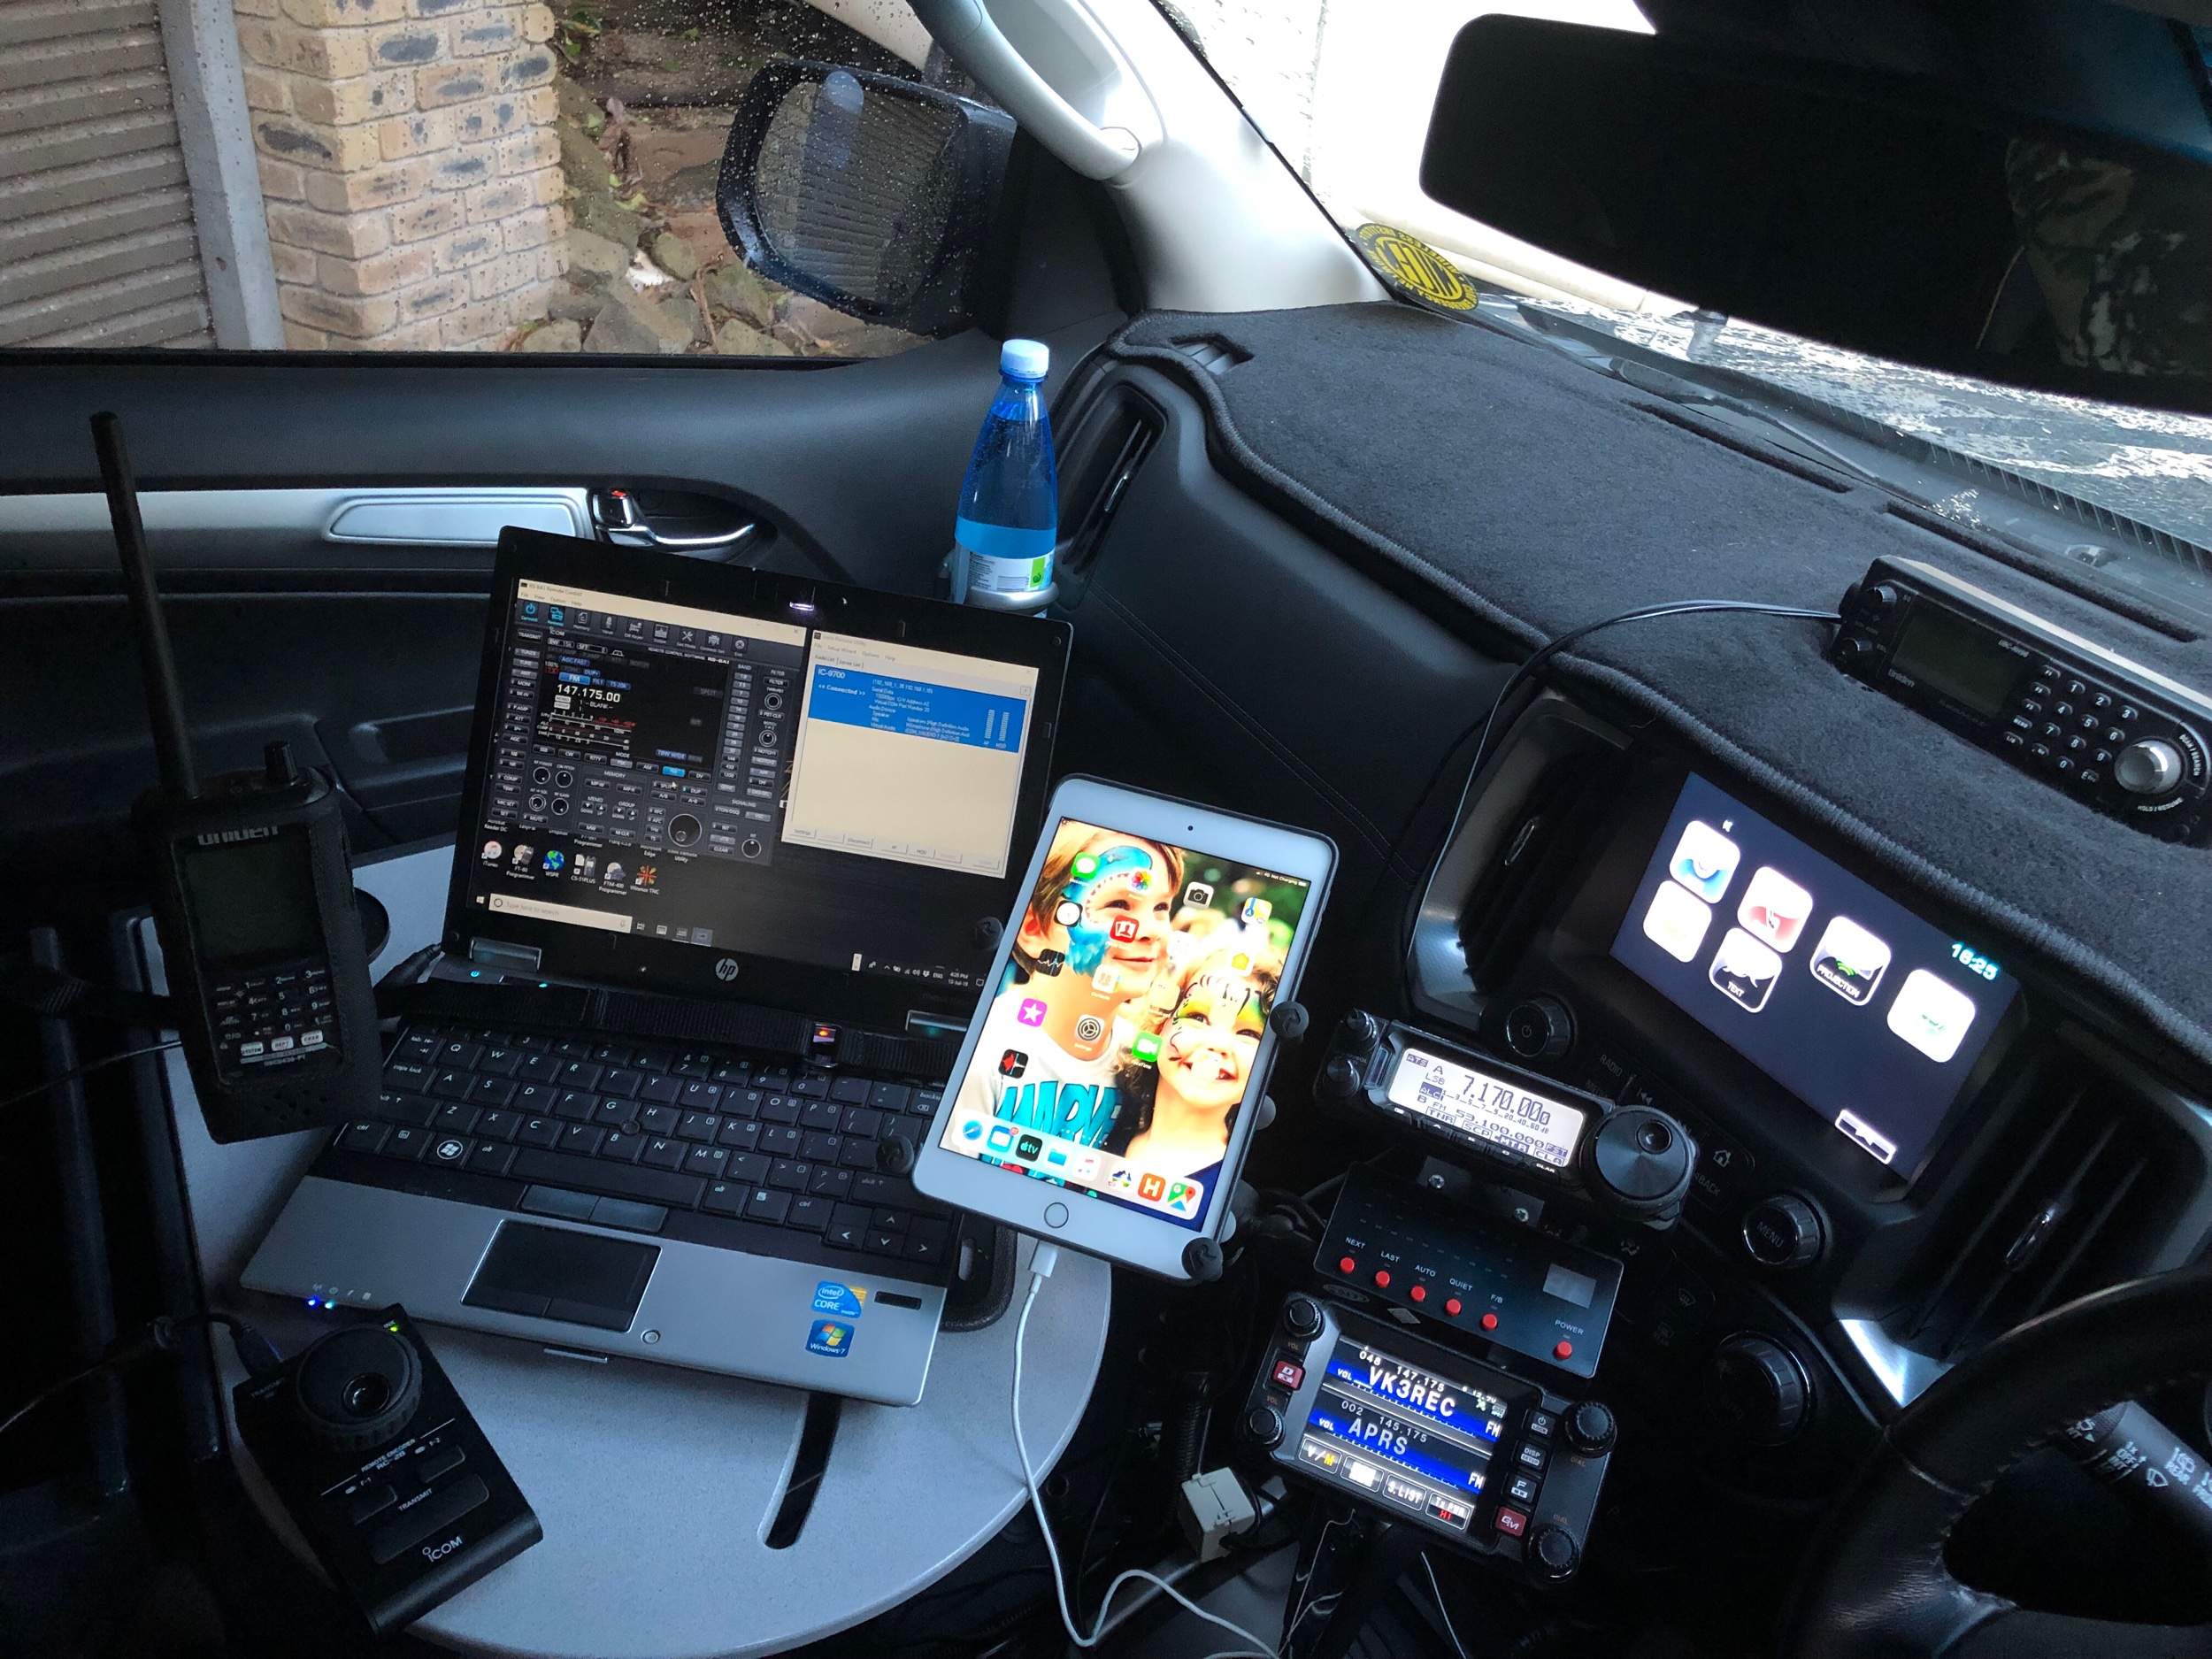 Overview of desk, laptop and radios